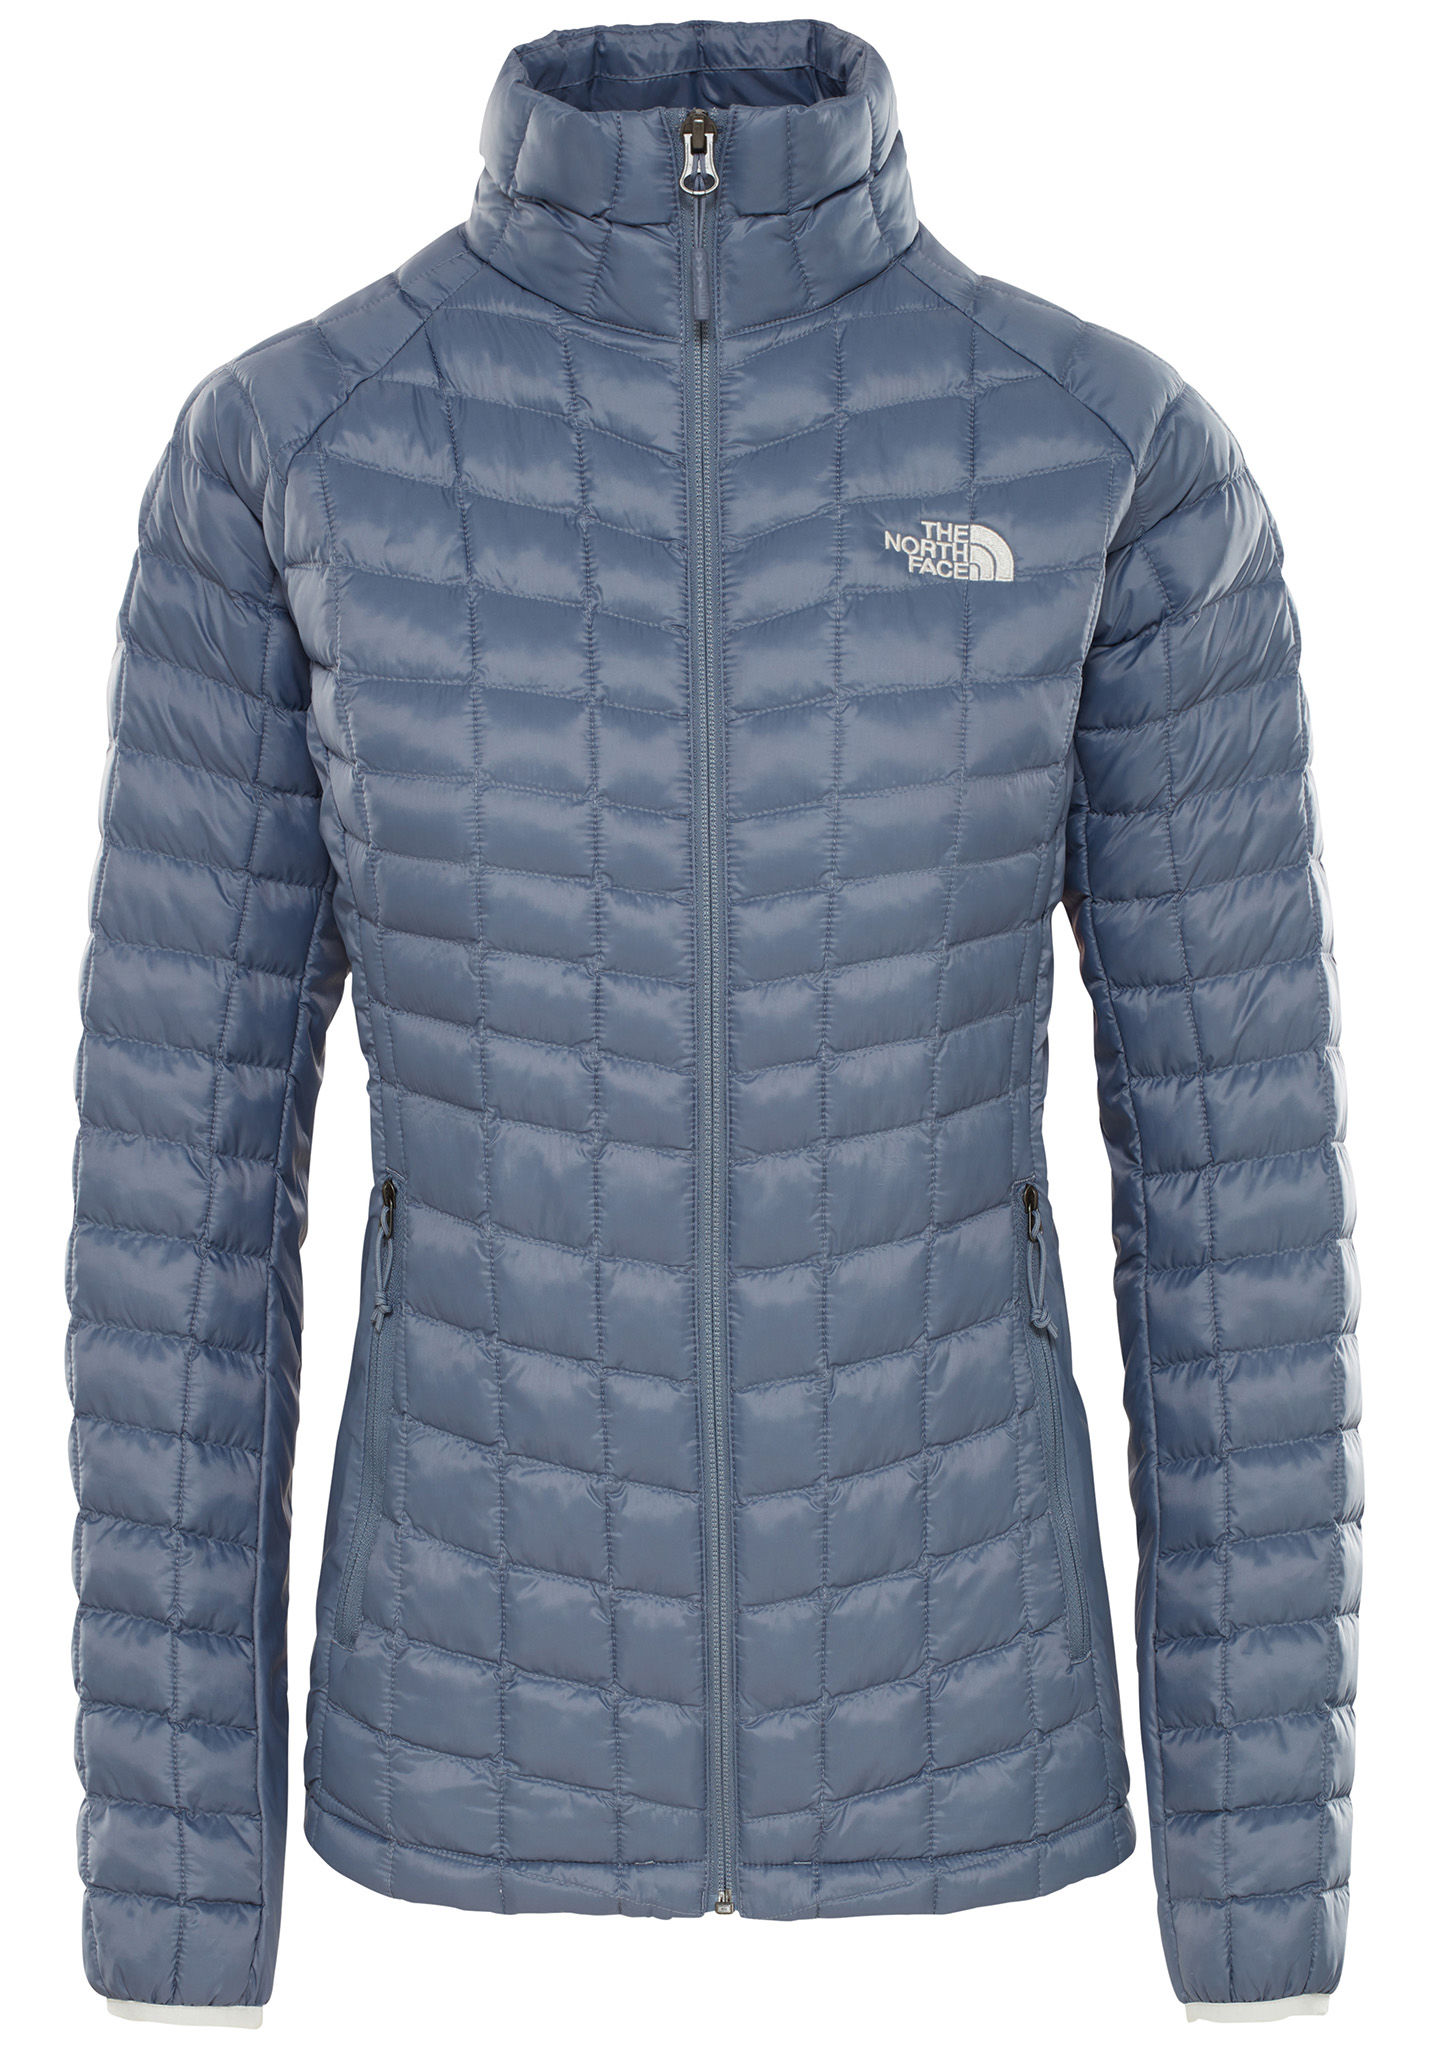 a3a13bc9d4 THE NORTH FACE Thermoball Sport - Funktionsjacke für Damen - Grau - Planet  Sports